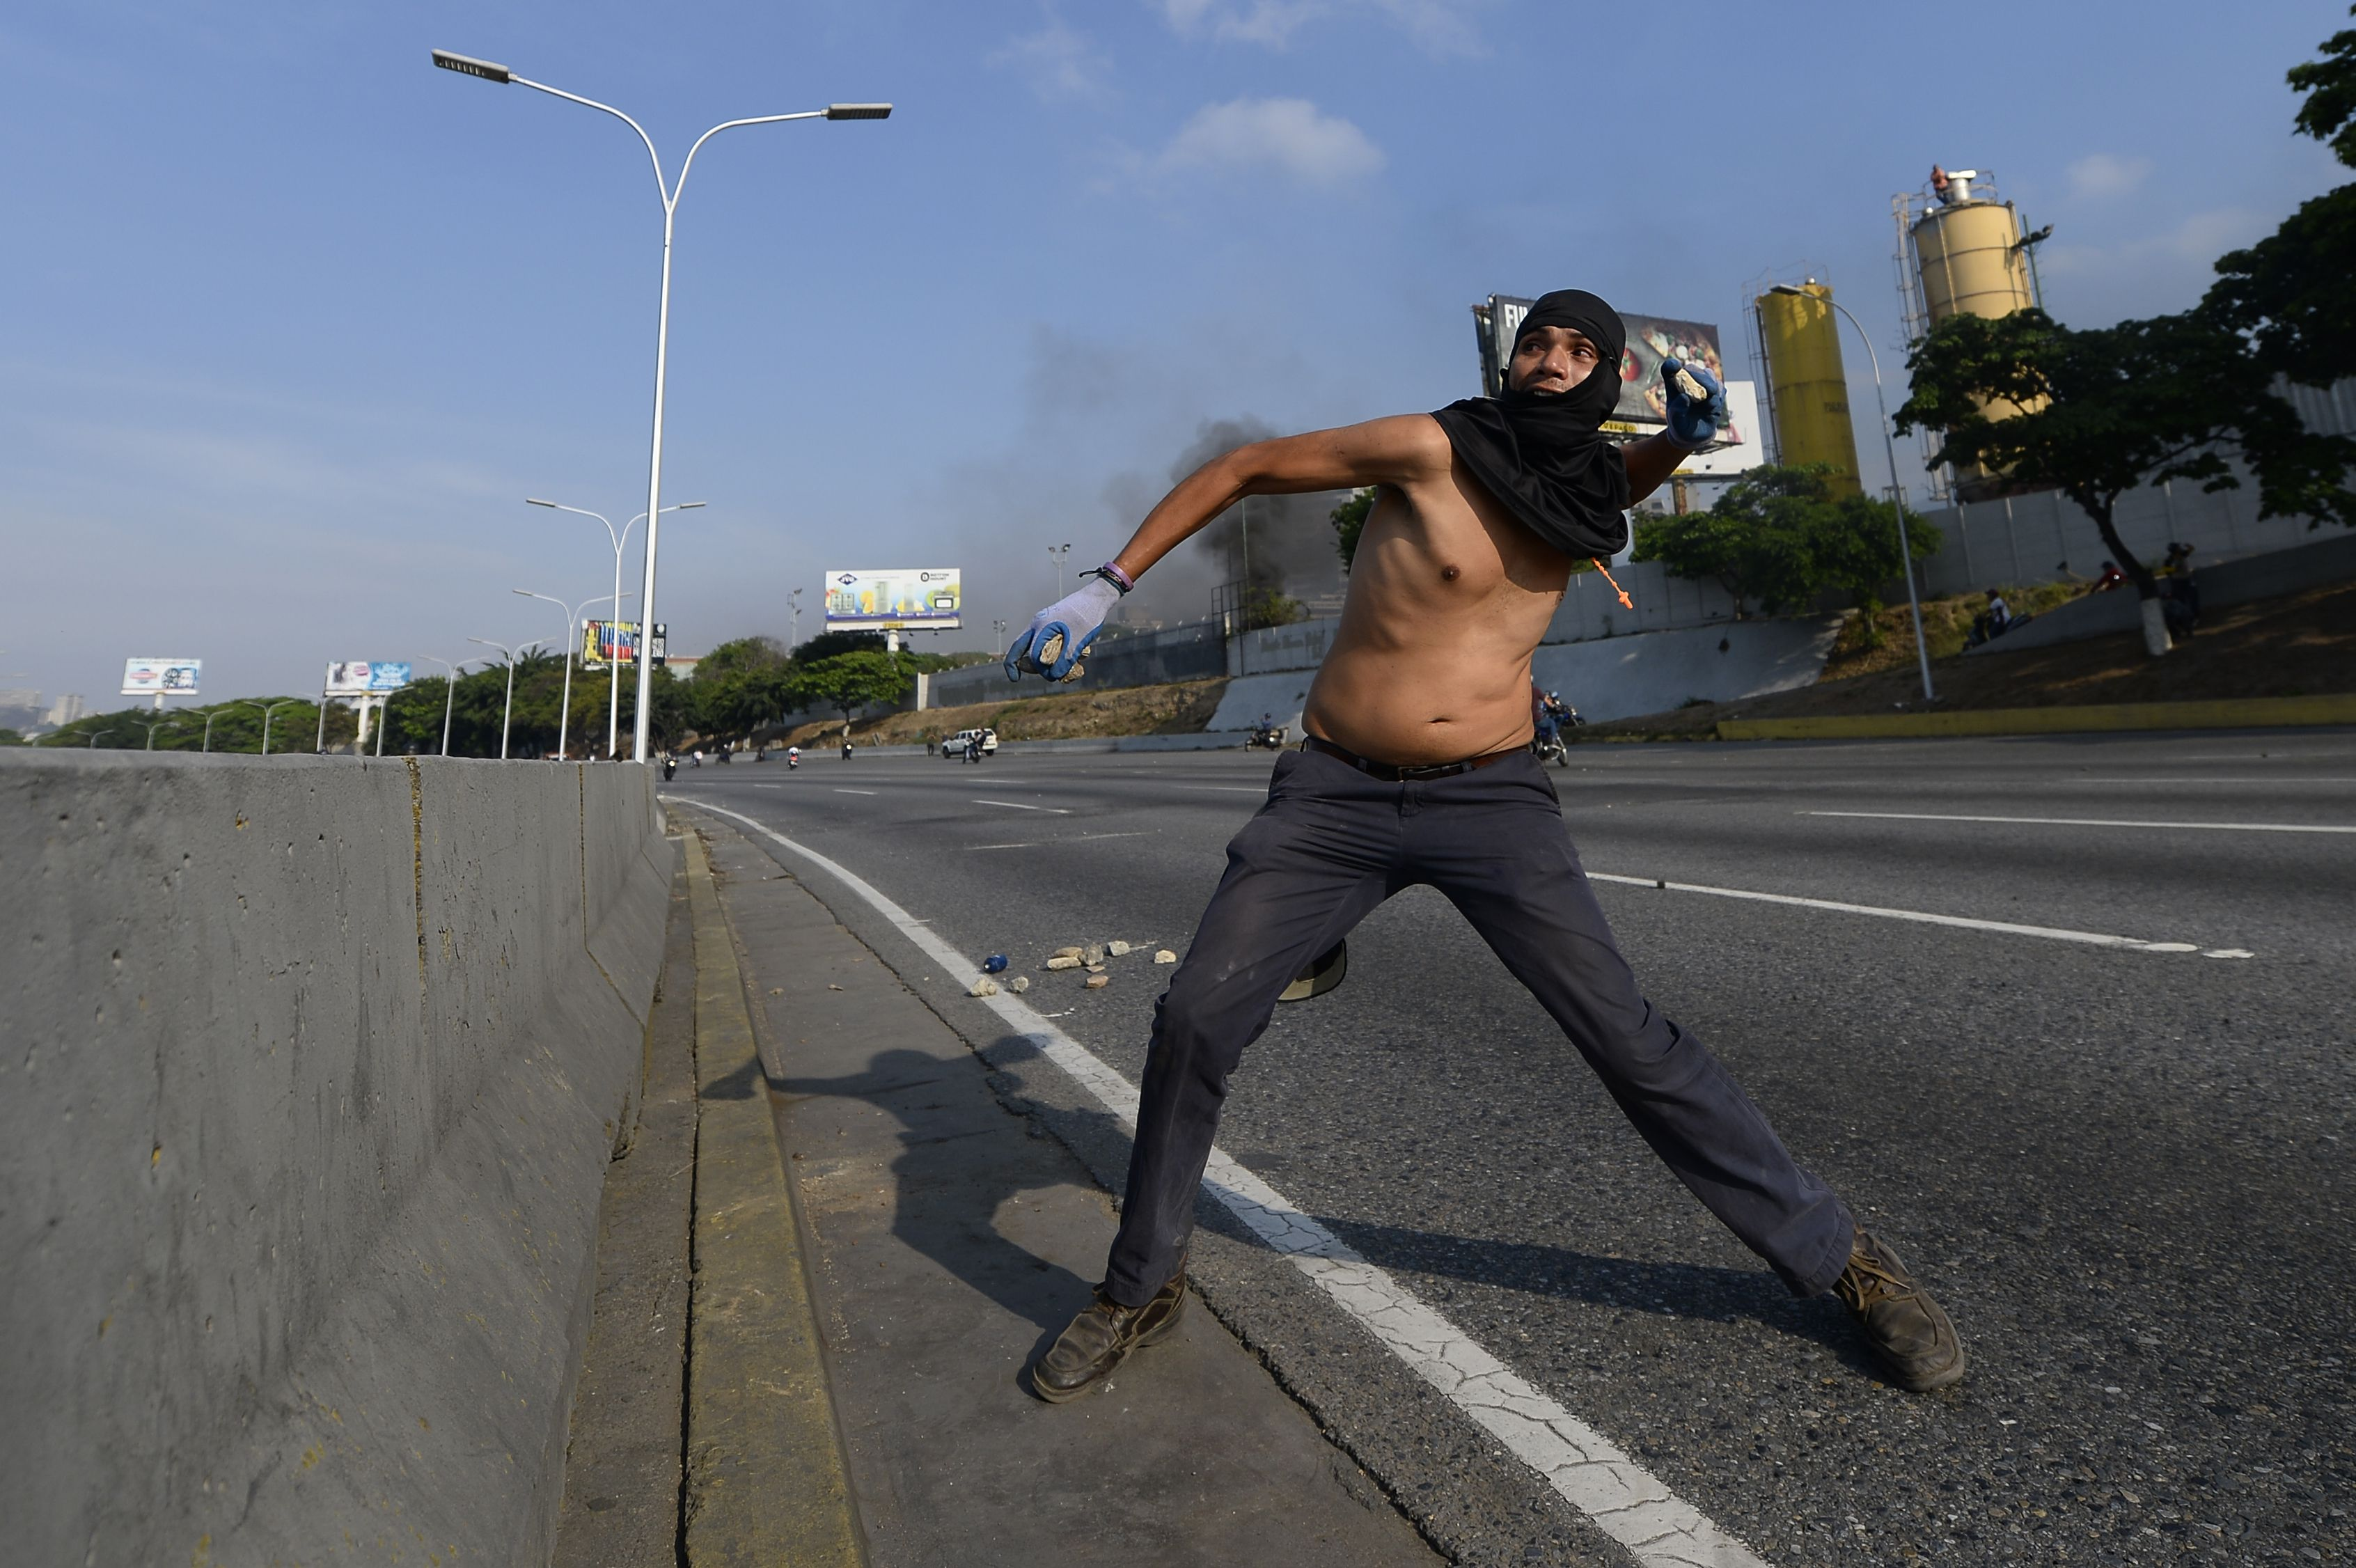 A Venezuelan clashes with security forces in Caracas on April 30, 2019. - Venezuelan opposition leader and self-proclaimed acting president Juan Guaido said on Tuesday that troops had joined his campaign to oust President Nicolas Maduro as the government vowed to put down what it said was an attempted coup. (Photo by Matias Delacroix / AFP) (Photo credit should read MATIAS DELACROIX/AFP/Getty Images)